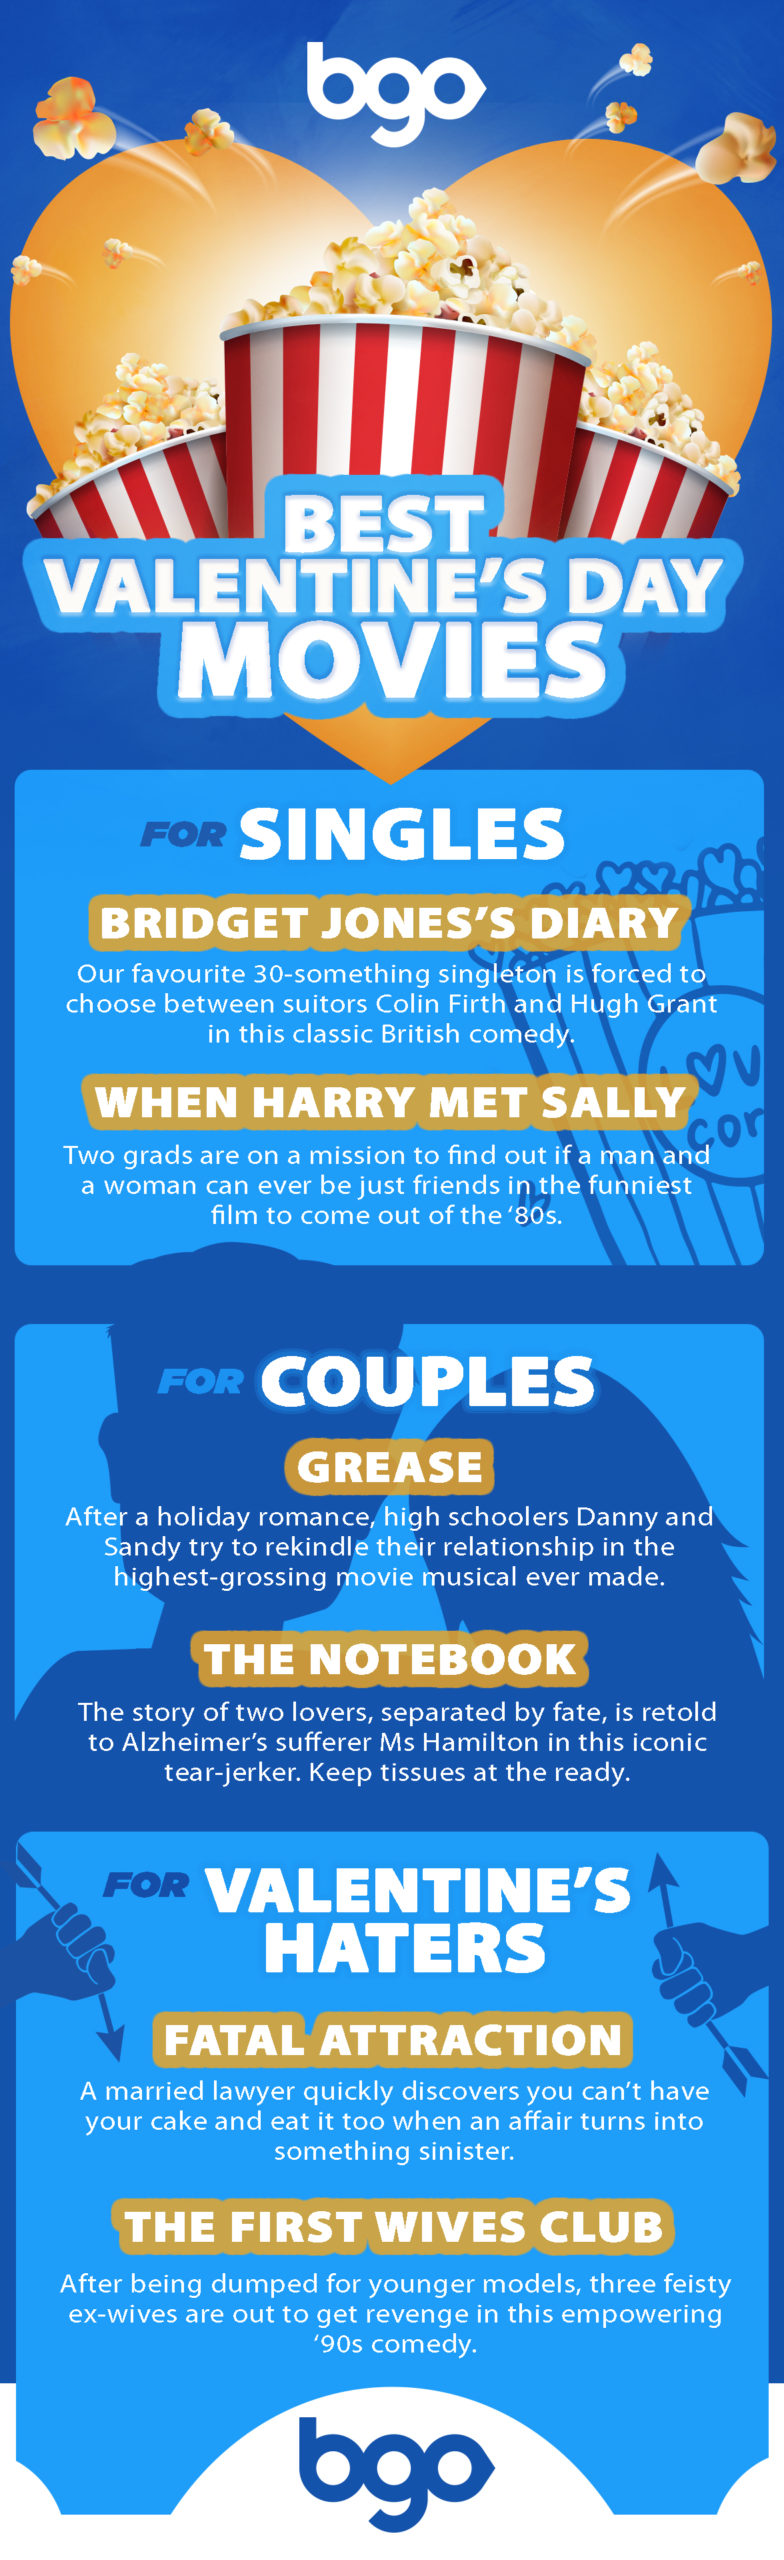 Best Valentines day movies infographic